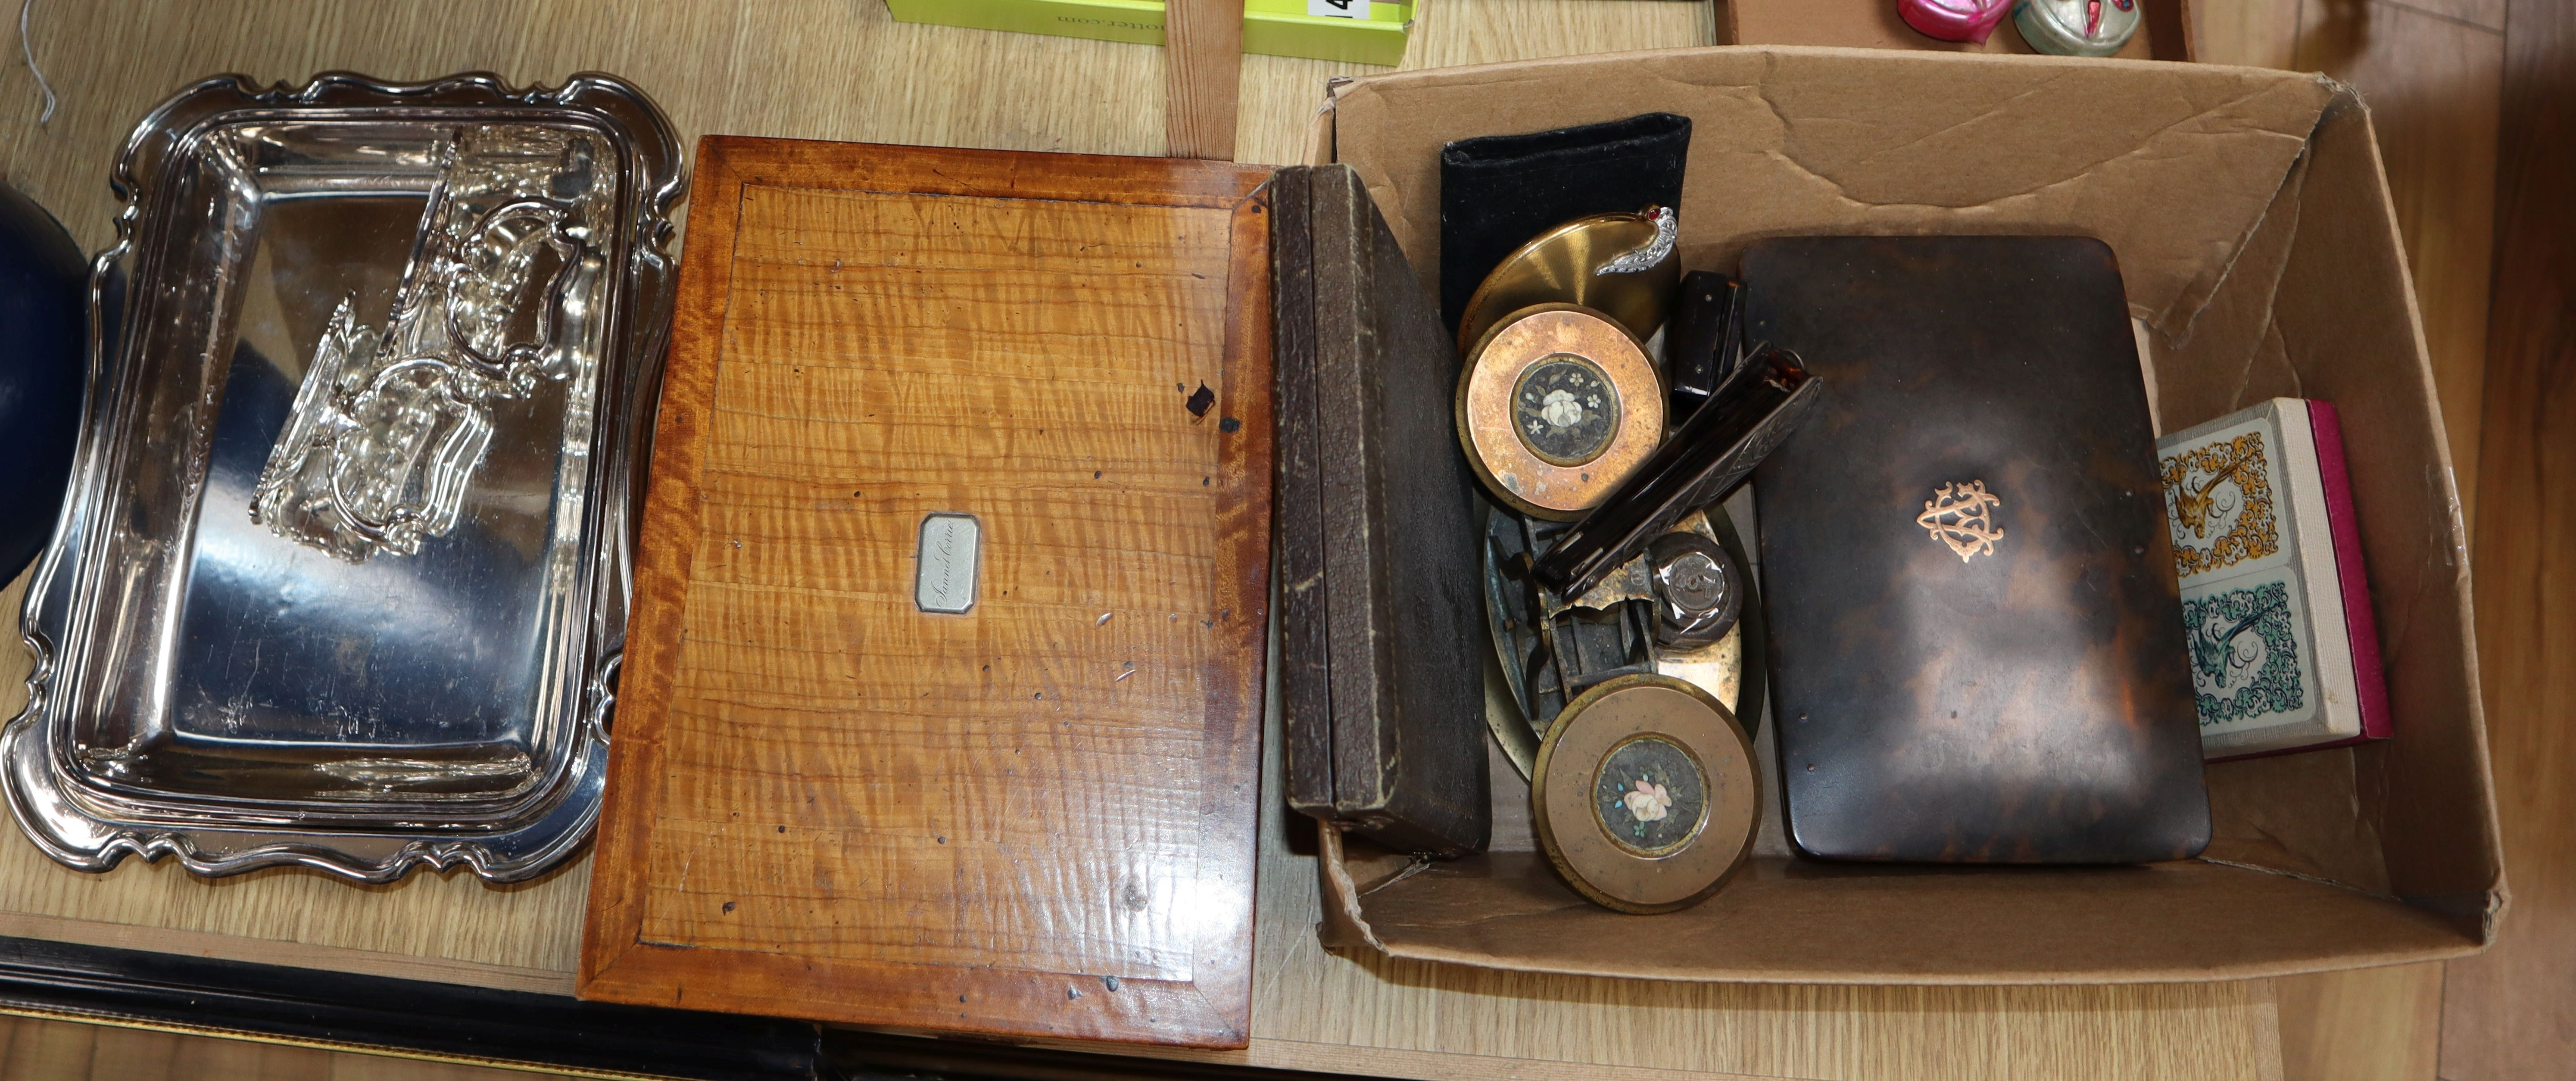 Lot 141 - A tortoiseshell box, another, a pair of scales, fan, two compacts, enamel spoons, sewing box and